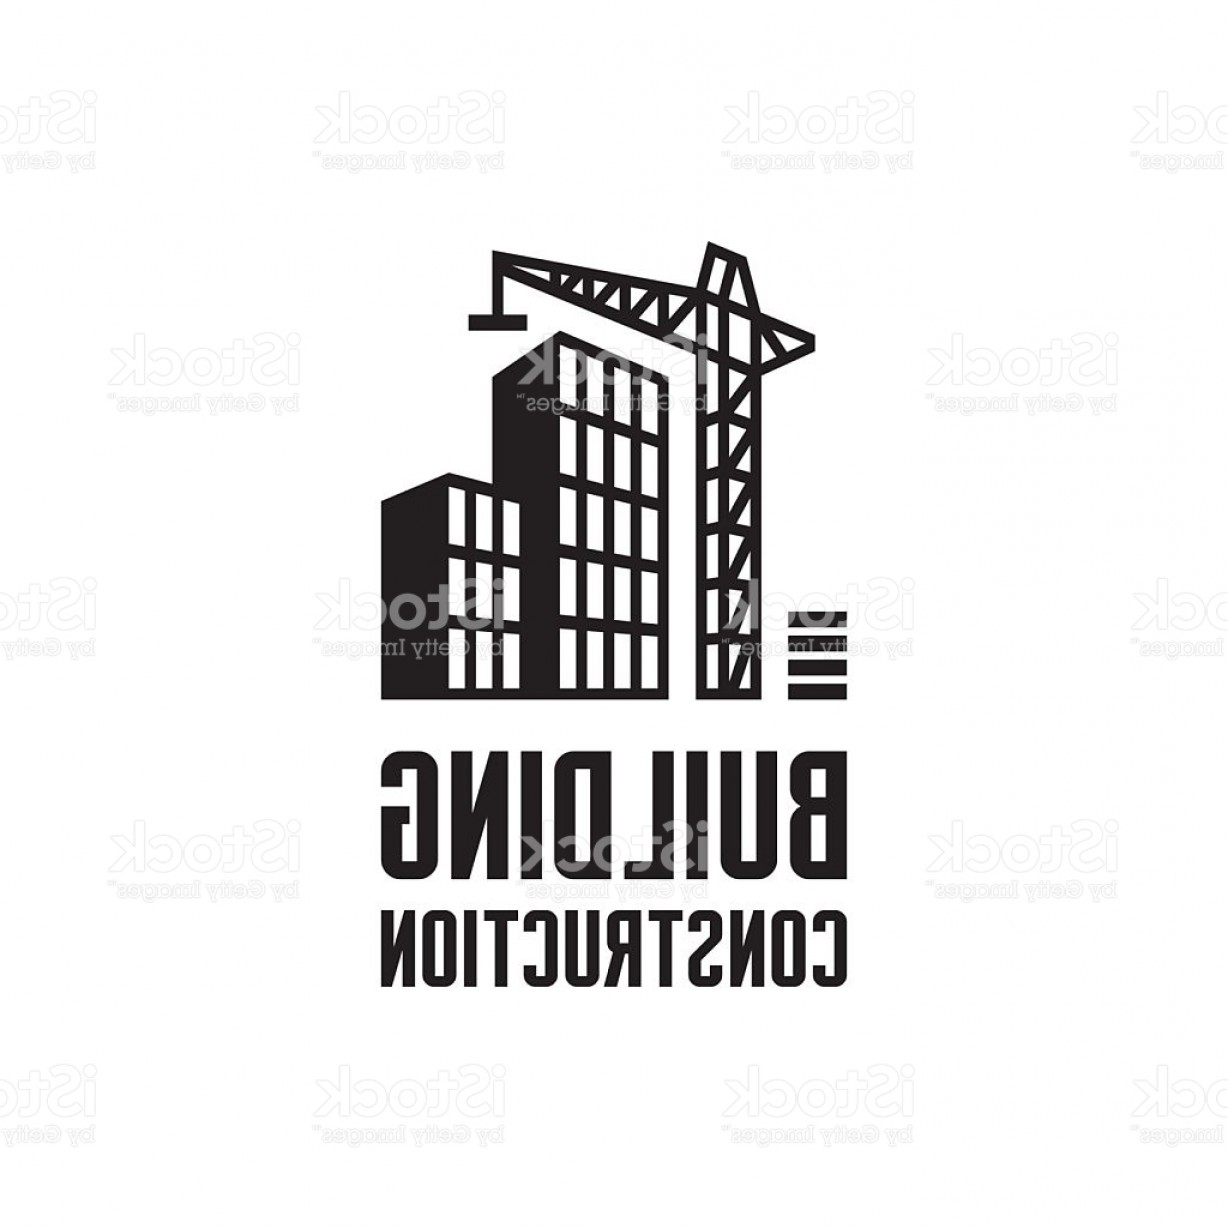 Construction Logos Vector Black And White: Building Construction Logo Illustration Crane And Building Construction Illustration Gm